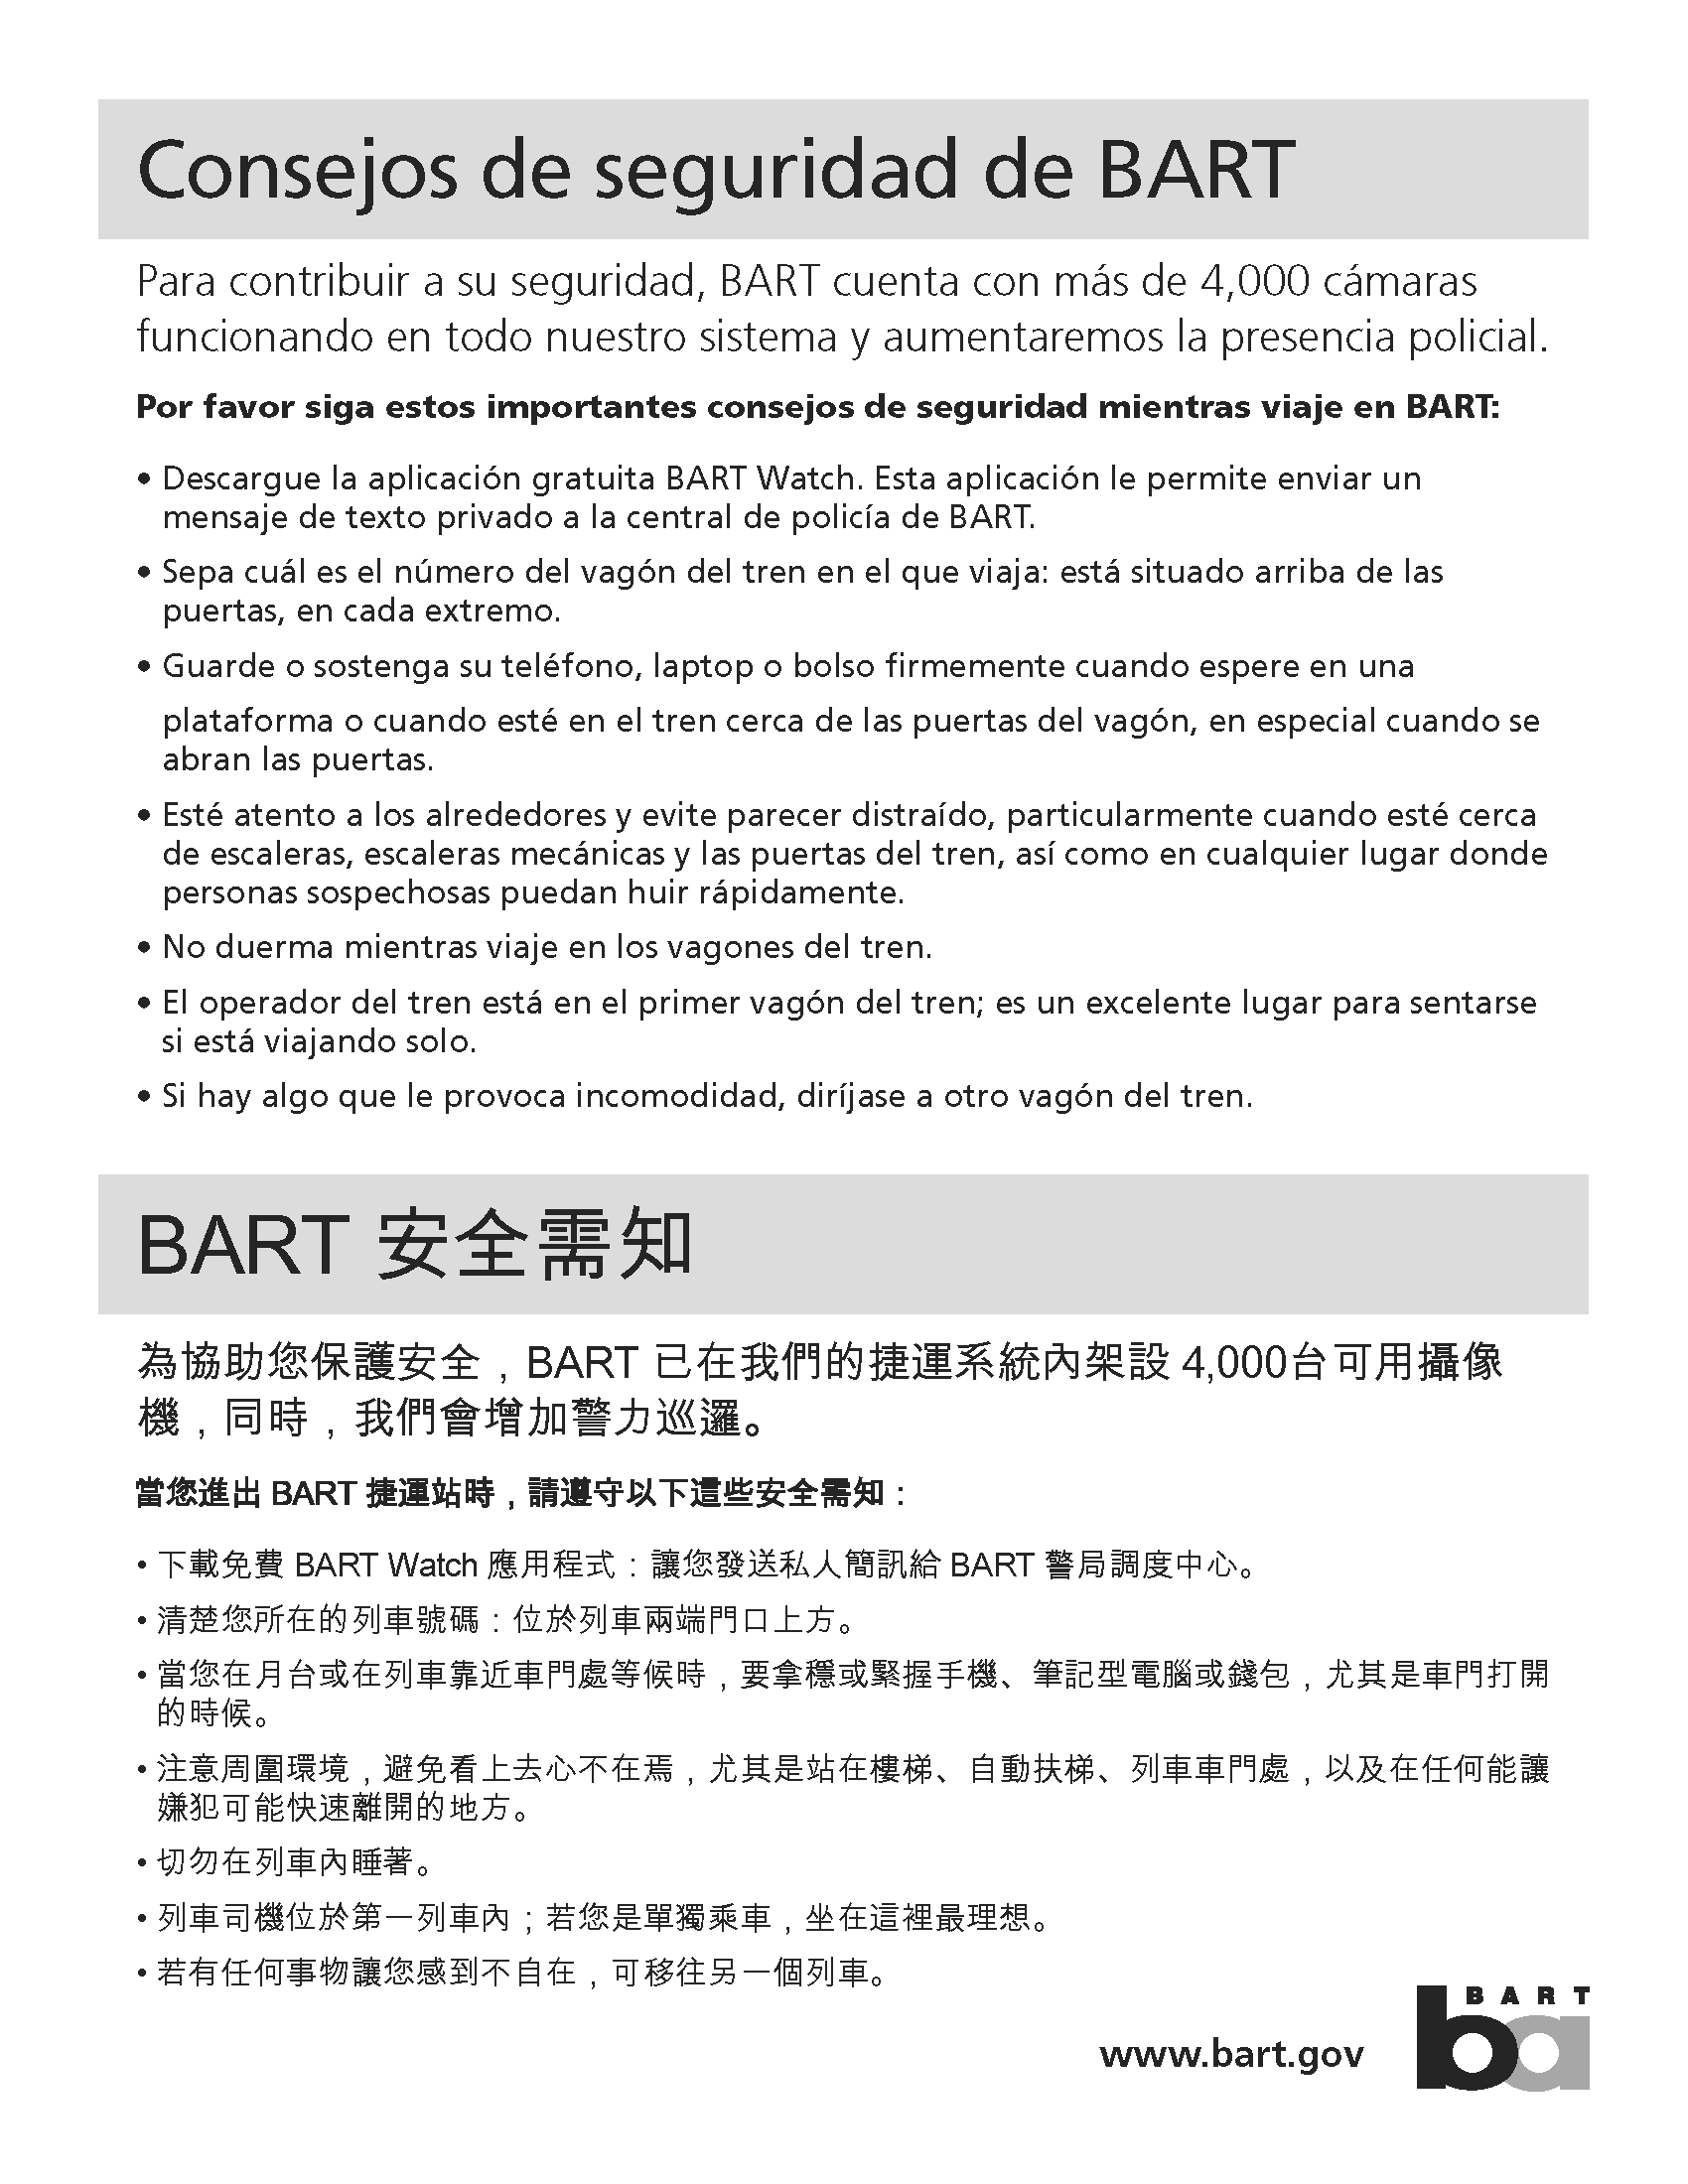 Safety Tips in Spanish and Chinese